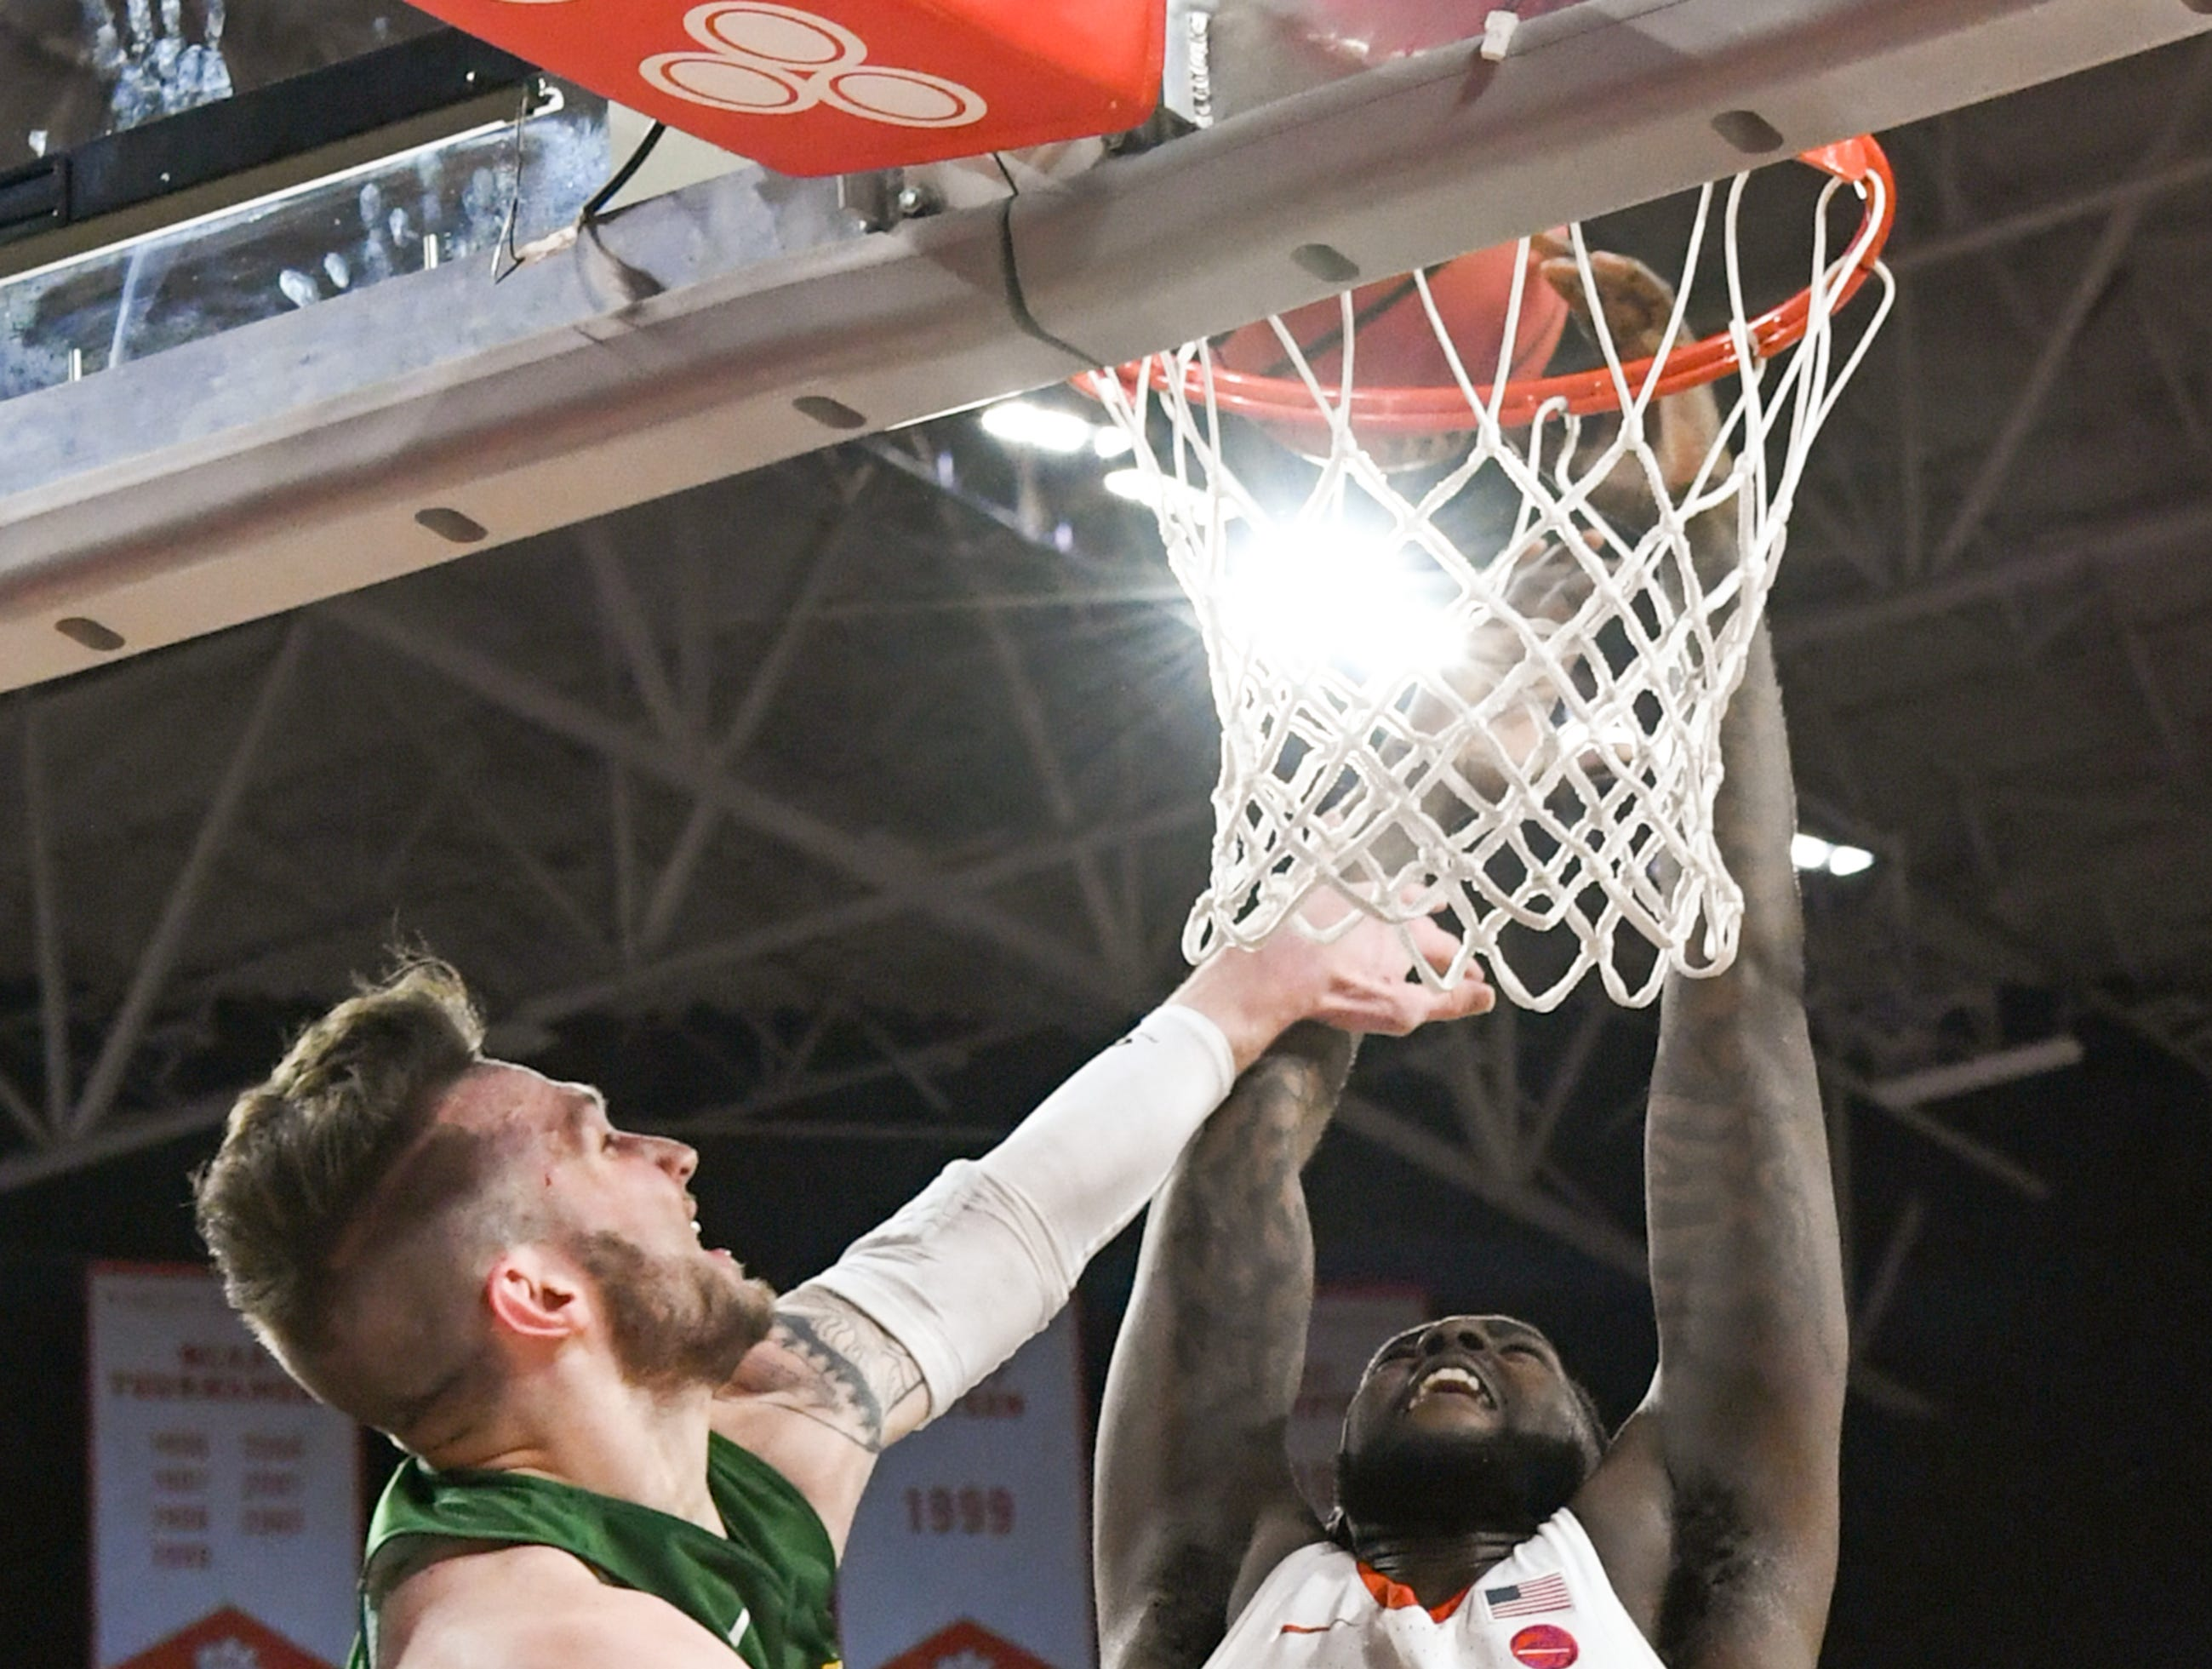 Clemson forward Elijah Thomas (14) attempts to dunk near Wright State guard Alan Vest(4) during the second half of the NIT at Littlejohn Coliseum in Clemson Tuesday, March 19, 2019.